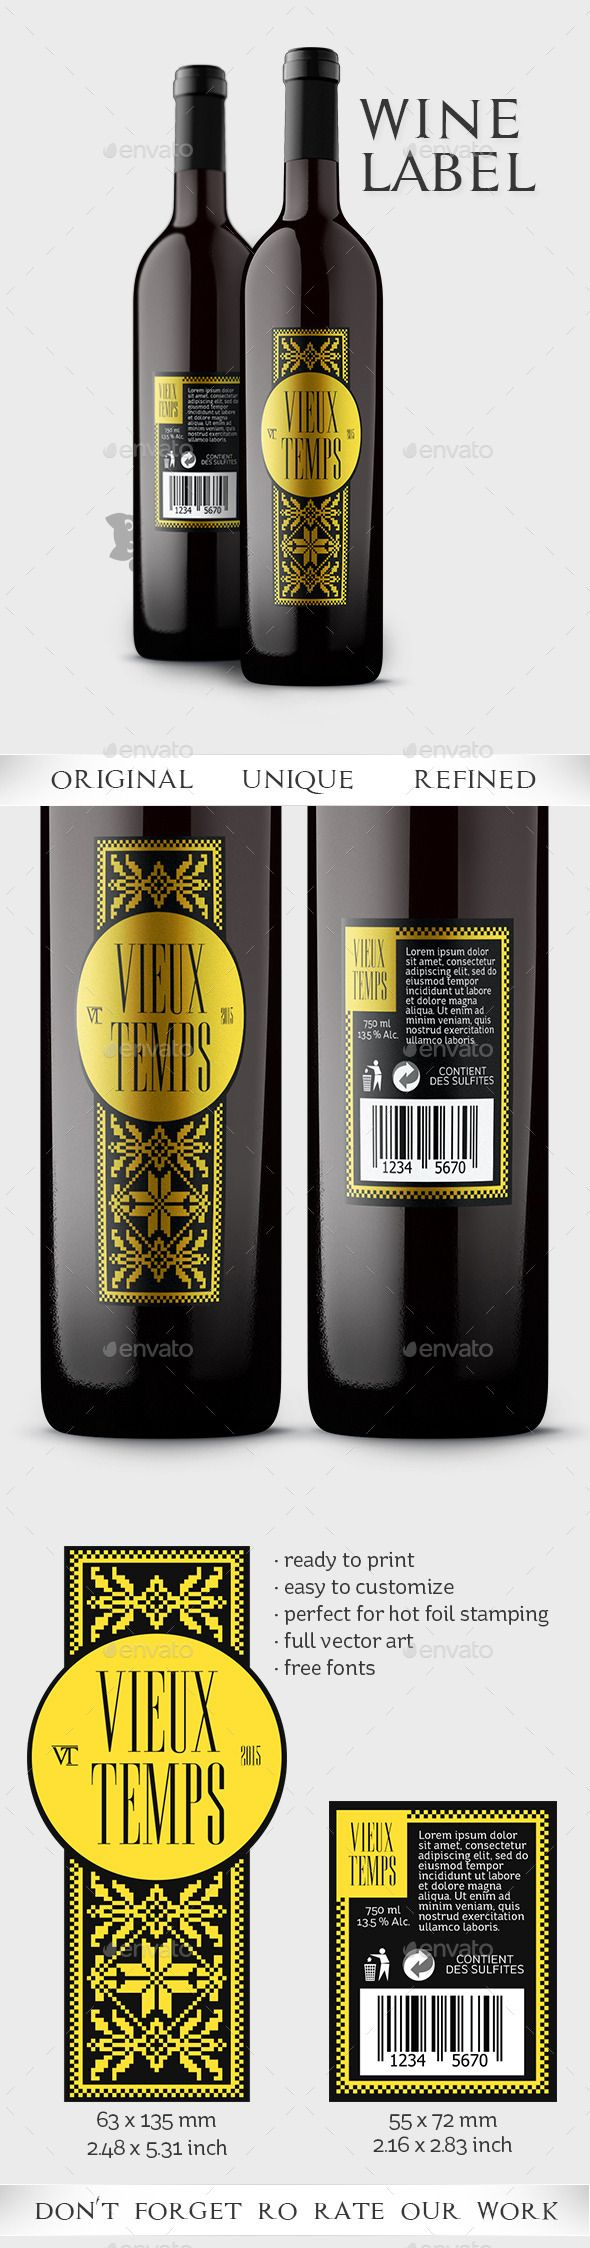 Vieux Temps Wine Label - Packaging Print Templates